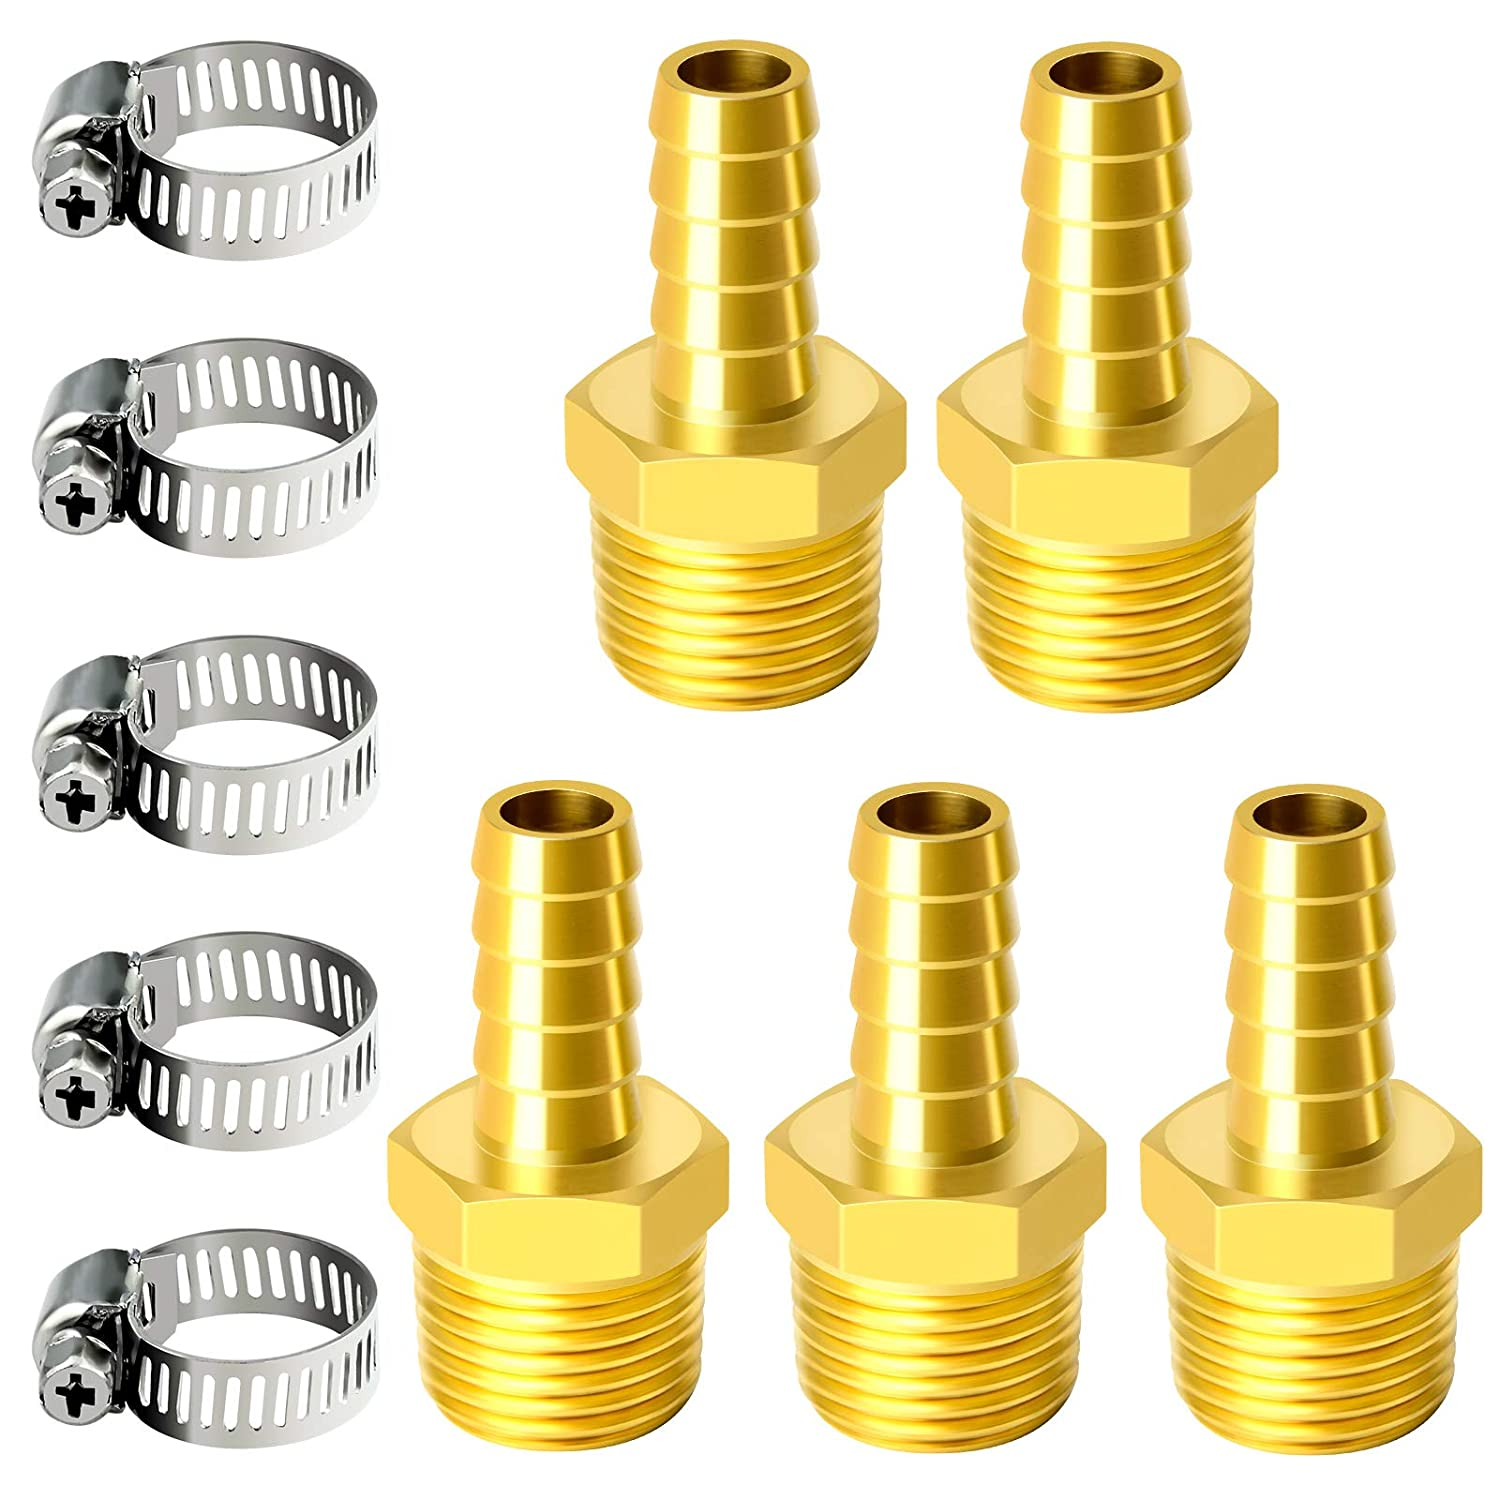 TAILONZ PNEUMATIC Brass Hose Barb NEW Fitting to 3 Industry No. 1 -3 Inch 8